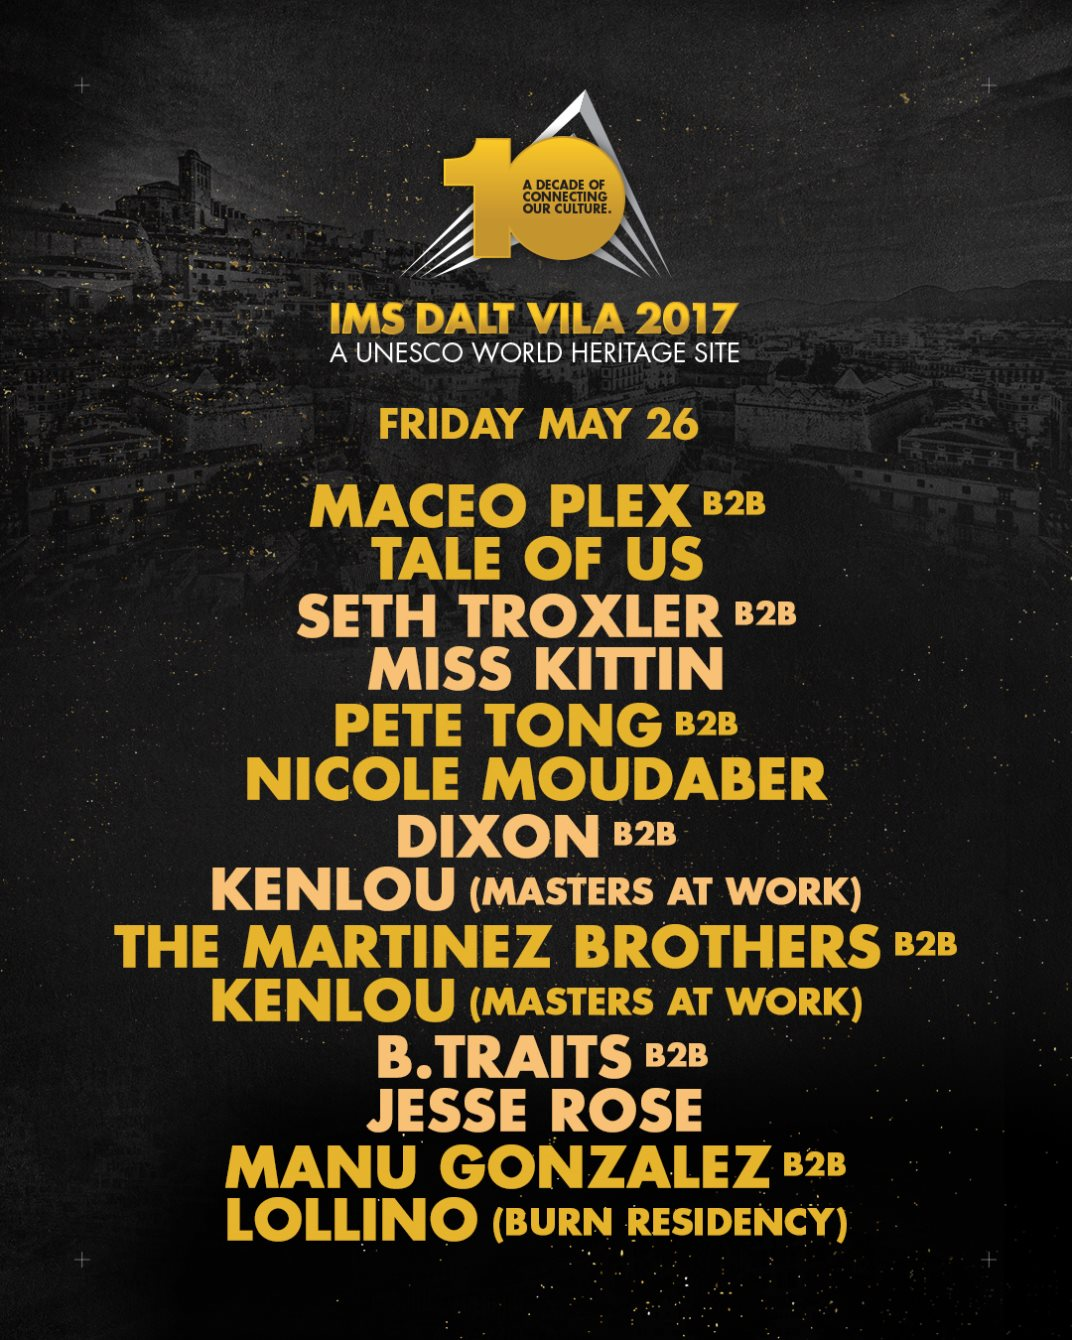 download → Lollino B2B Manu Gonzalez - live at IMS Dalt Villa 2017 (Ibiza) - 26-May-2017